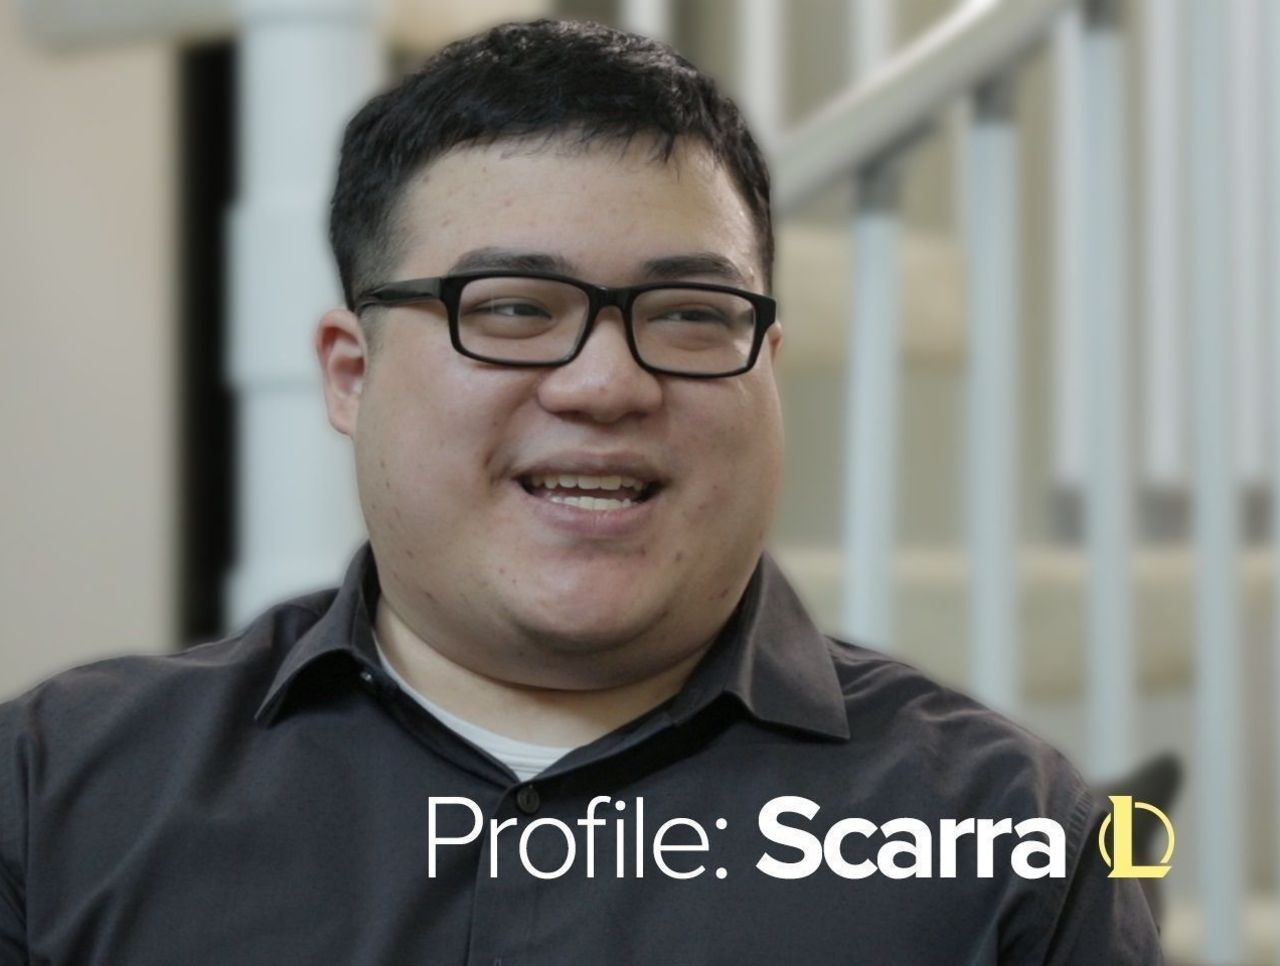 Cropped profile scarra